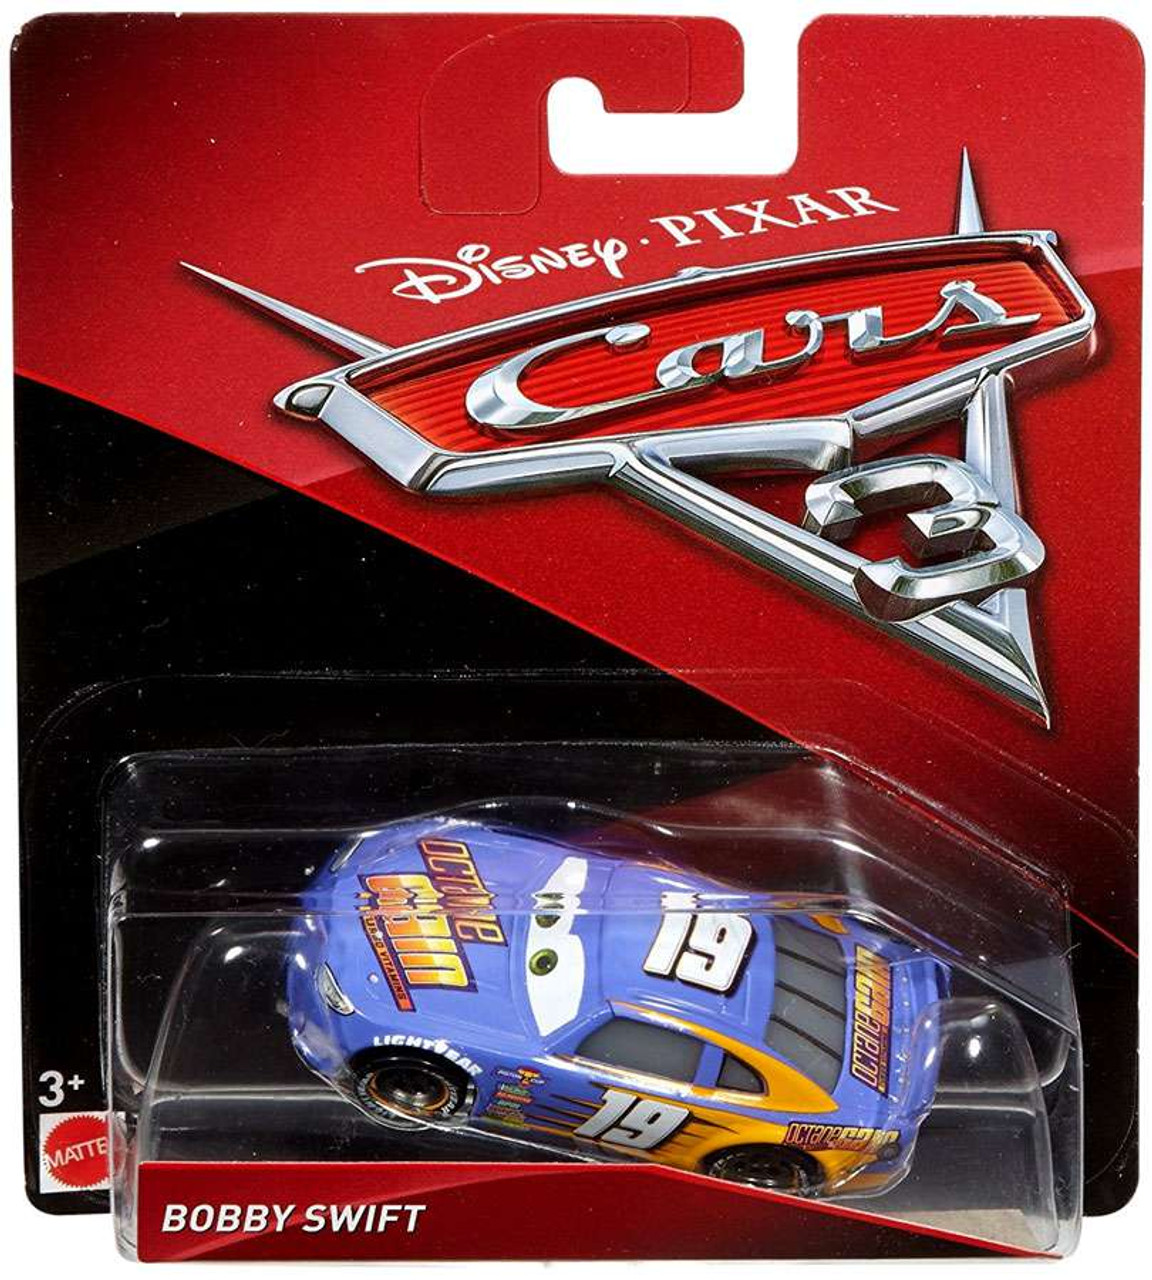 Disney Pixar Cars Cars 3 Bobby Swift 155 Diecast Car Mattel Toys